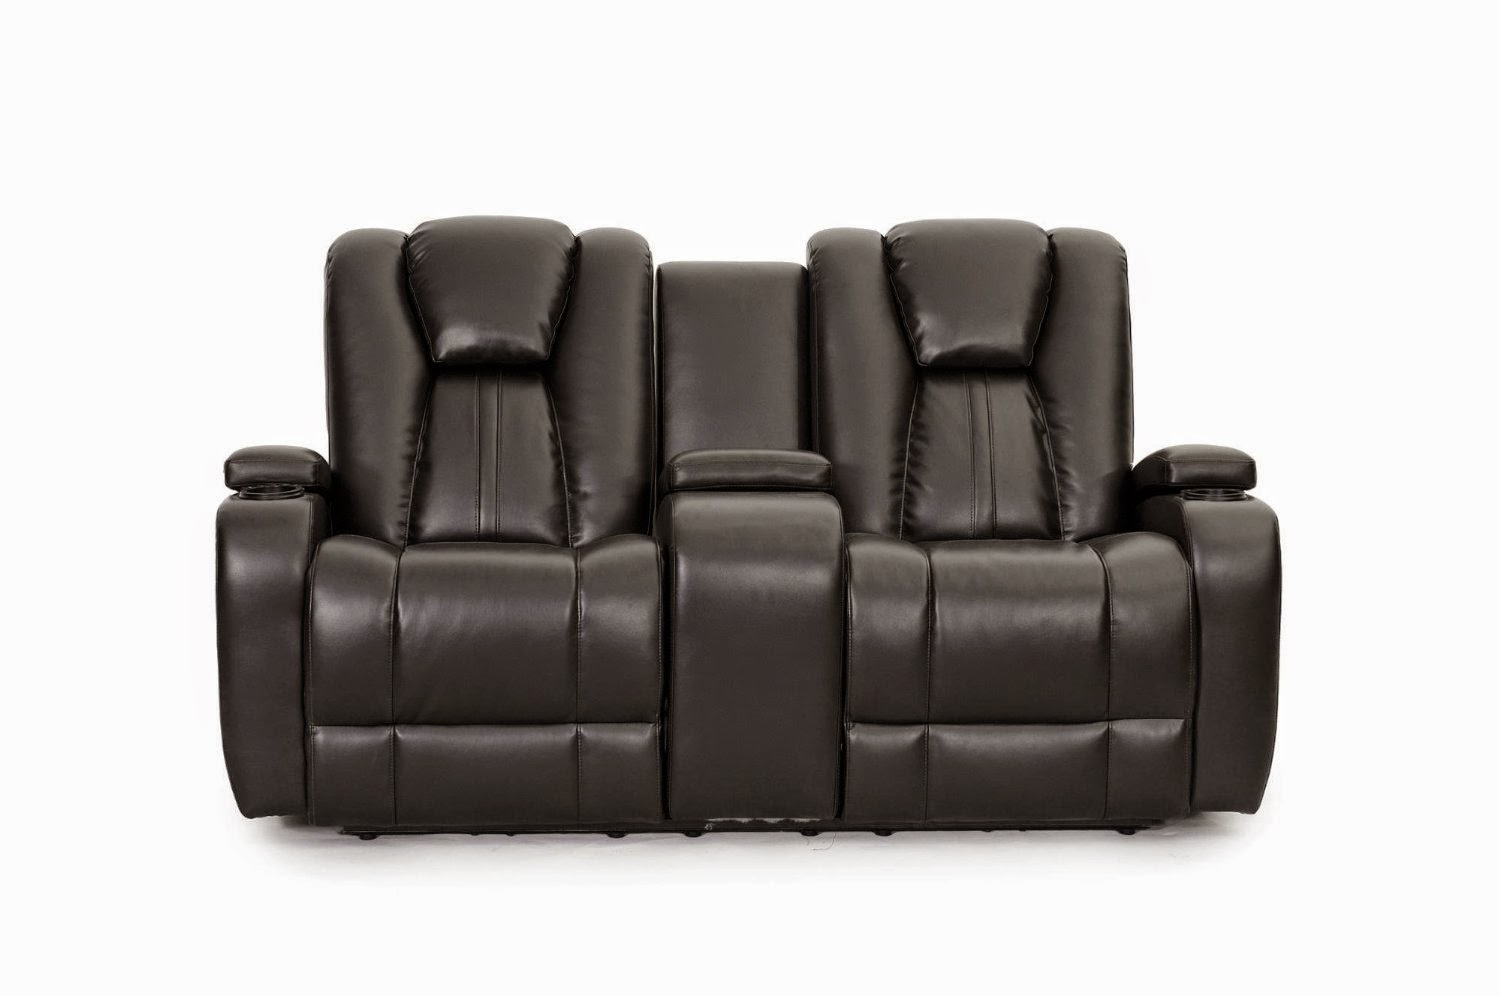 2 Seater Recliner Sofa Covers Saddle Leather Cheap Reclining Sofas Sale: Hawkeye Double ...